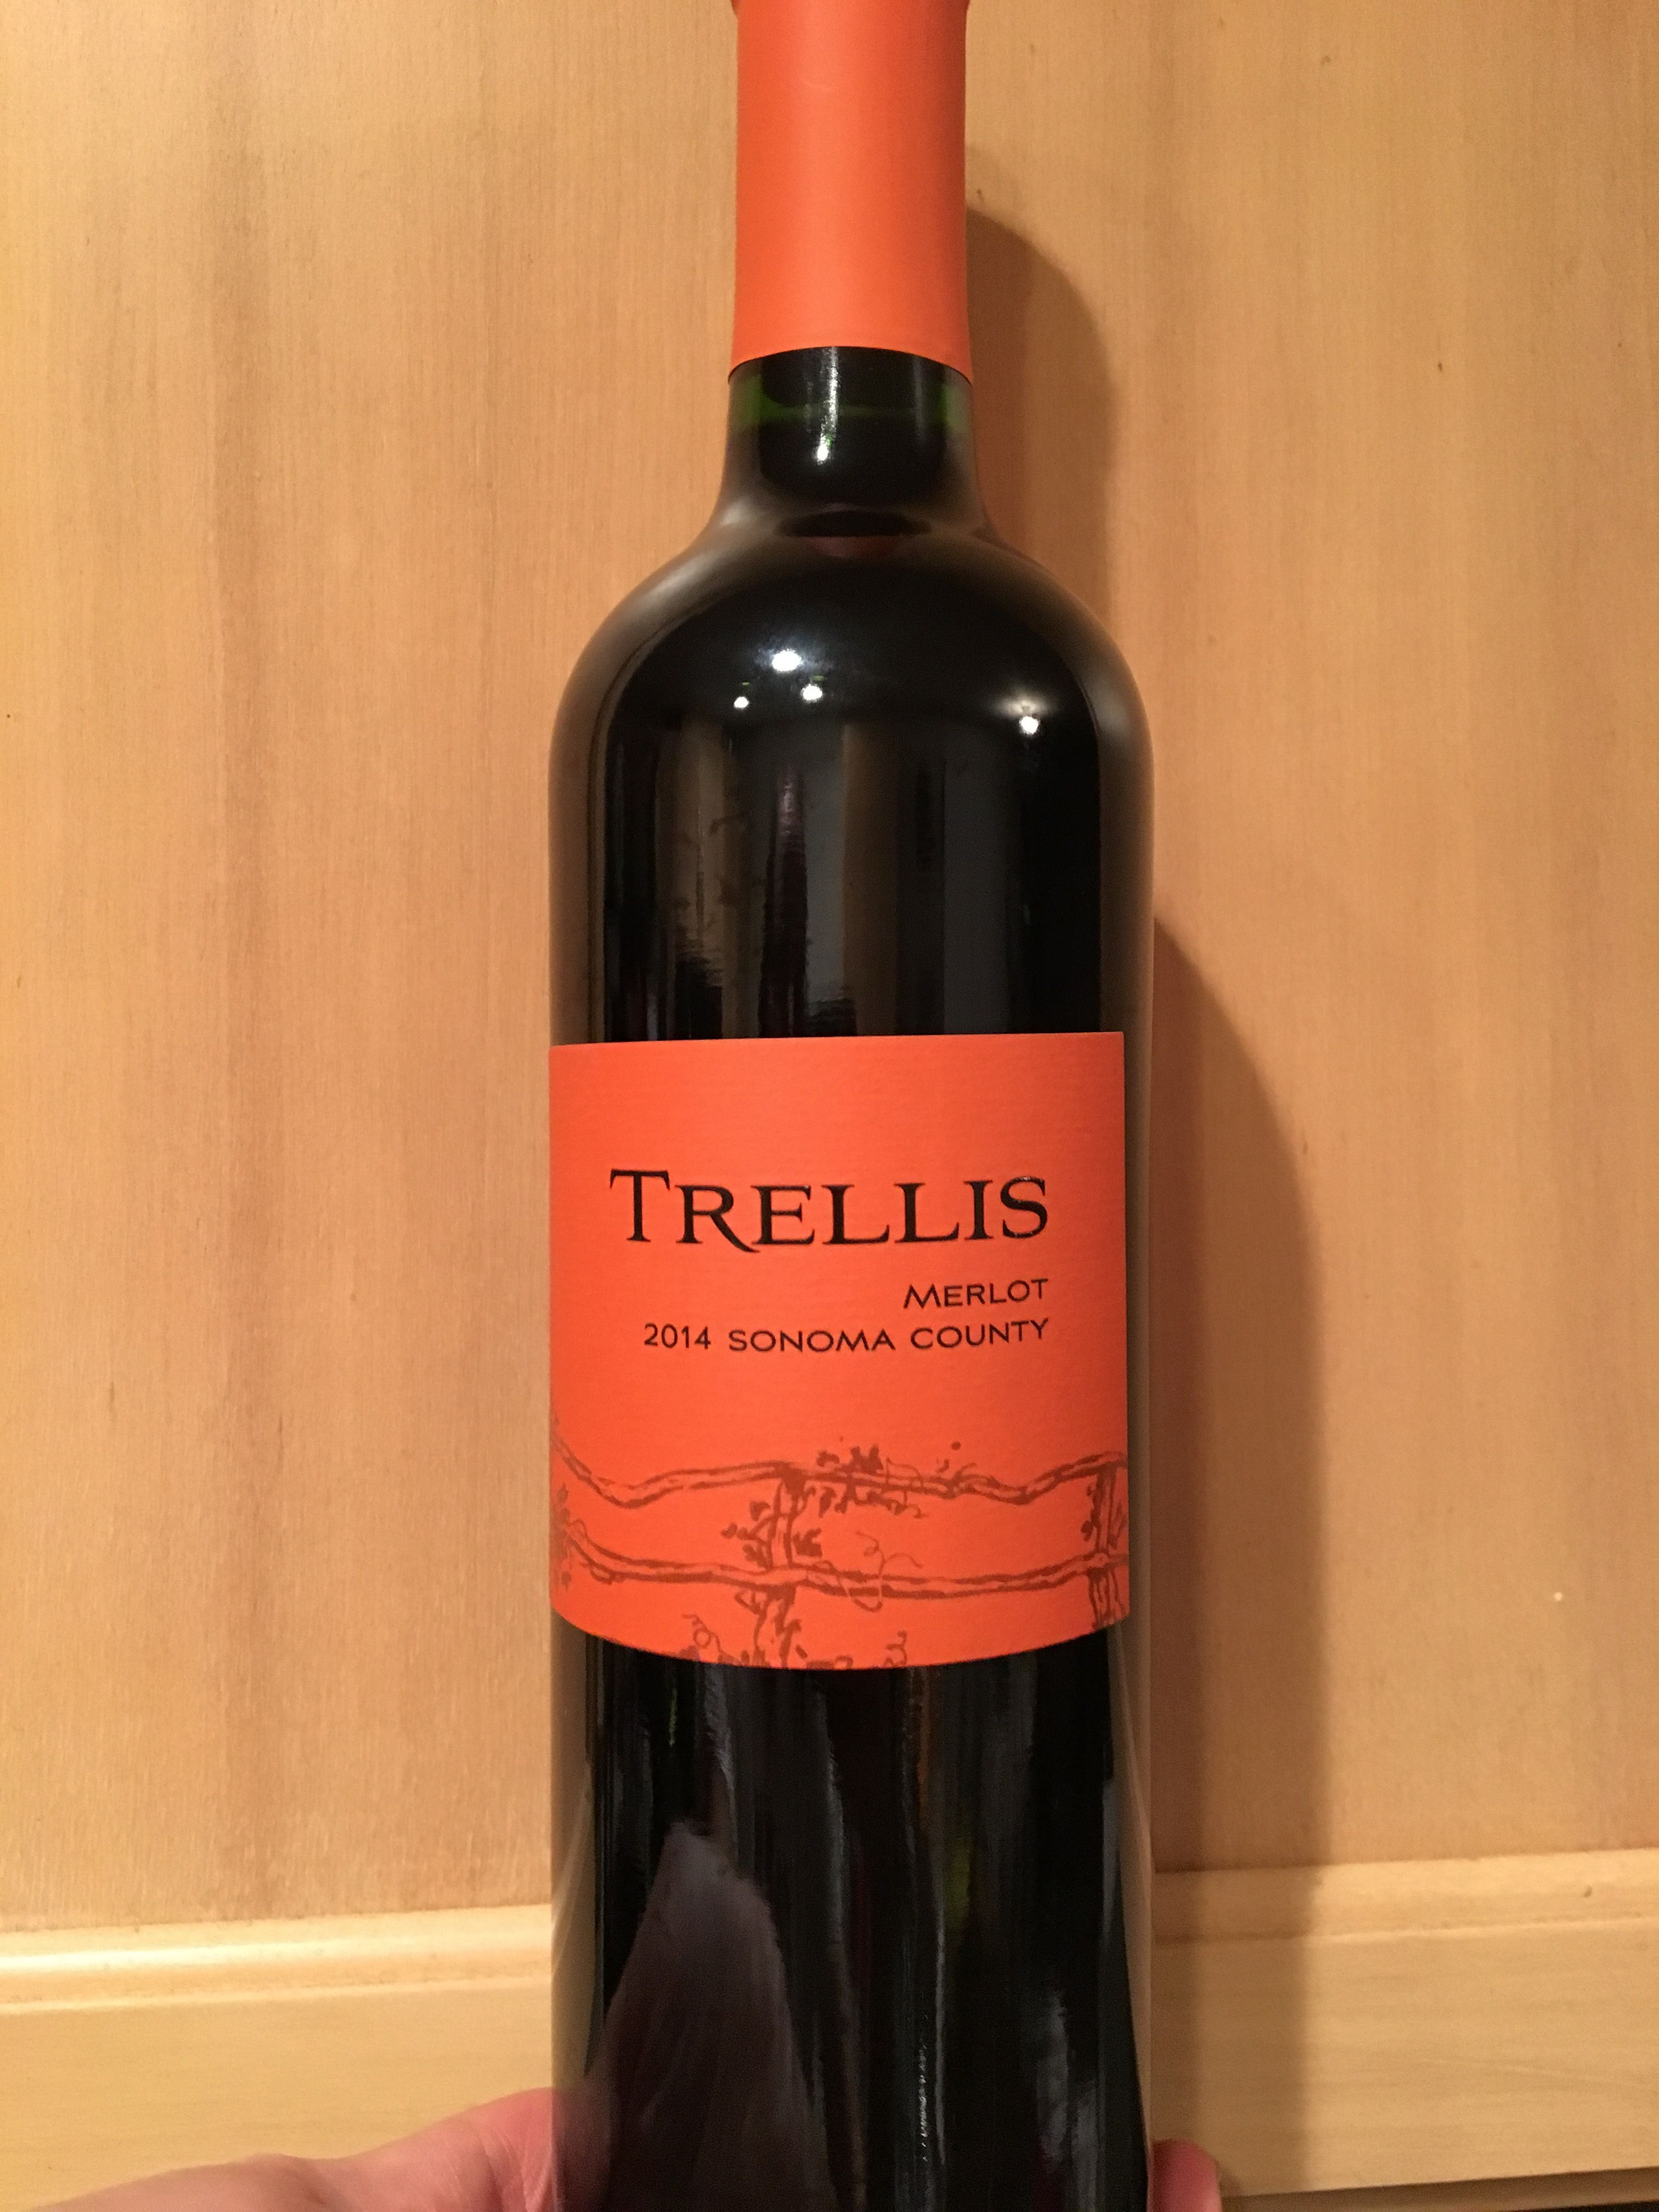 Trellis Merlot 2014 Sonoma County Ca Rich Black Cherry Fruit With An Elegant And Well Rounded Finish Black Cherry Fruit Trellis Wine Bottle